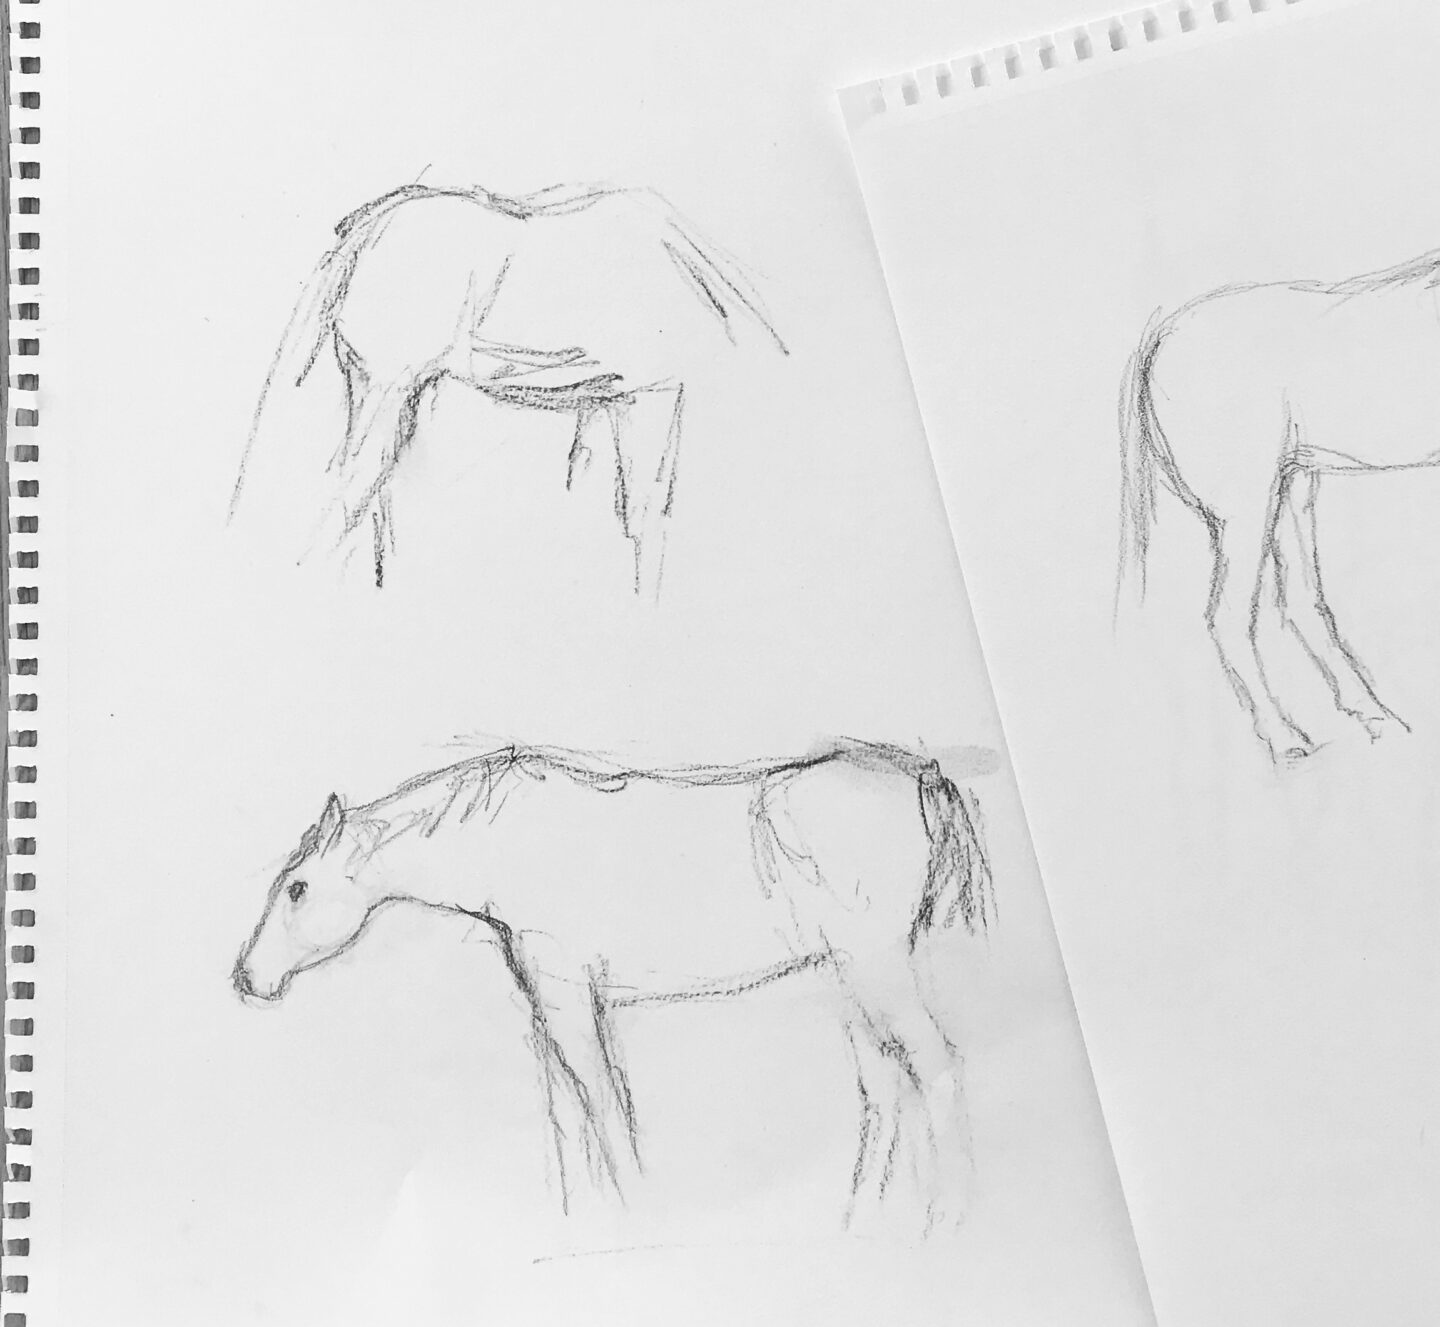 Horse sketches in pencil.